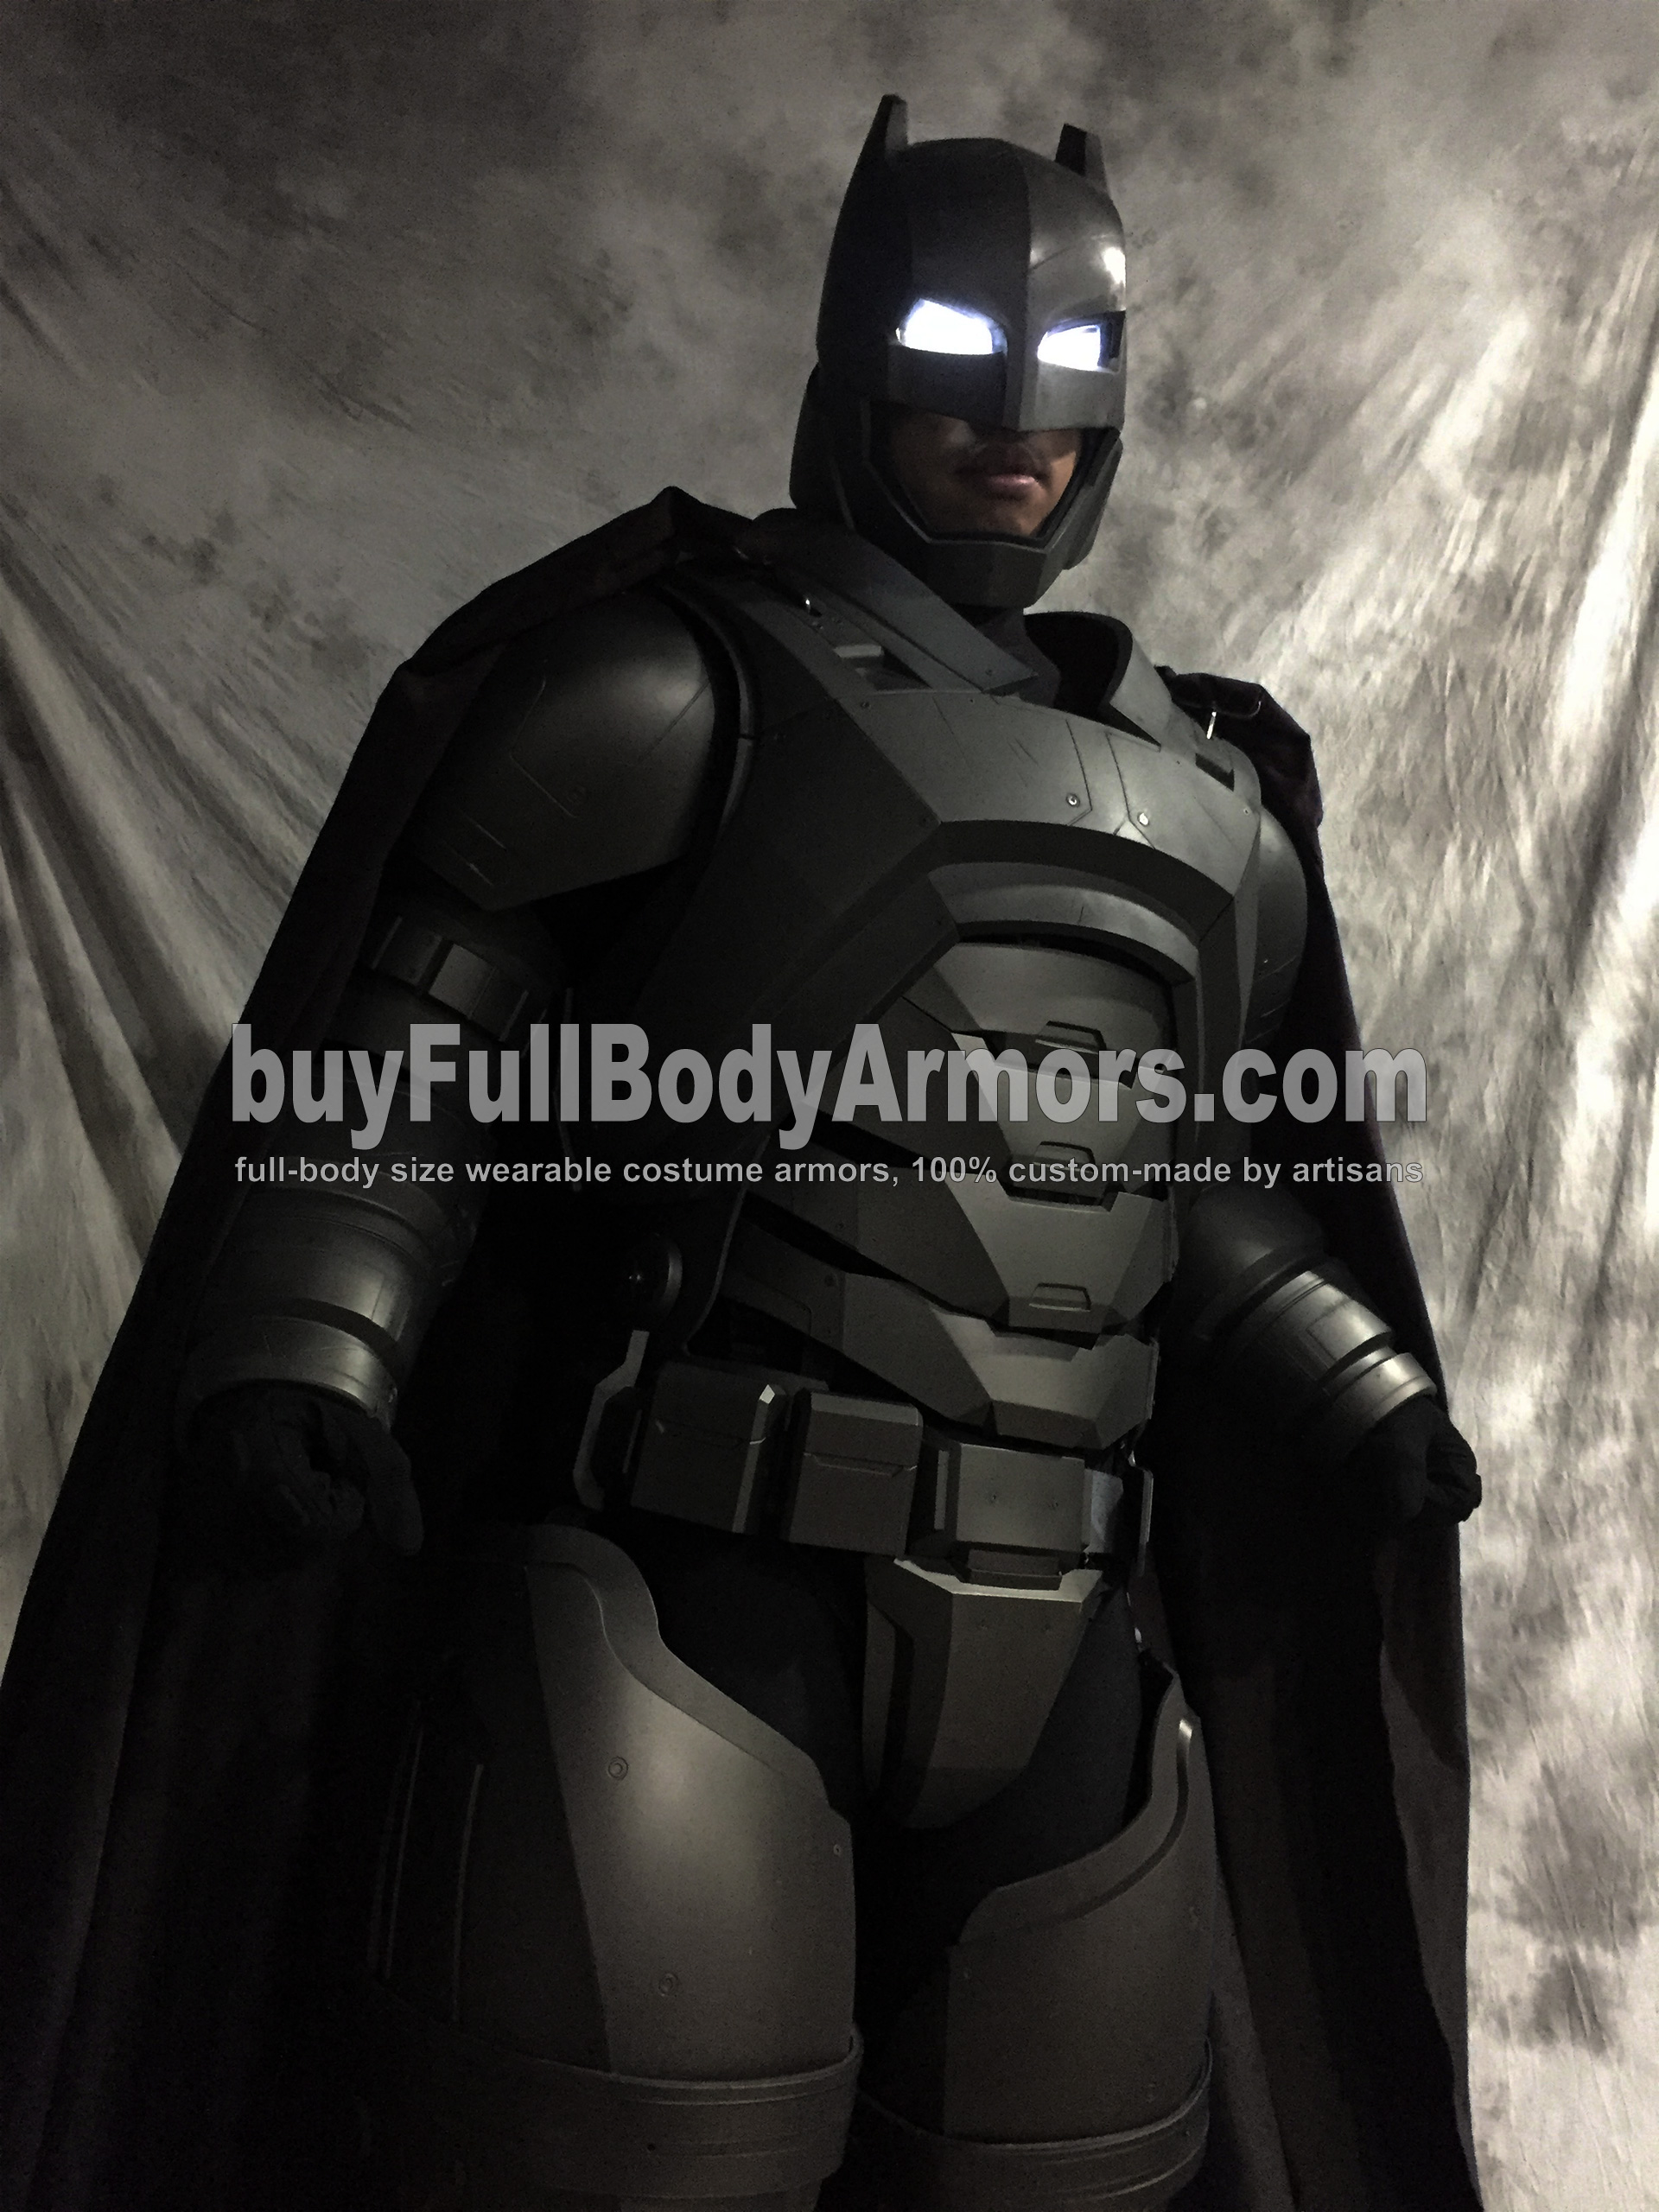 Full Body Prototype of the Wearable Armored Batsuit (Batman armor suit costume) in Batman v Superman: Dawn of Justice (2016) 4